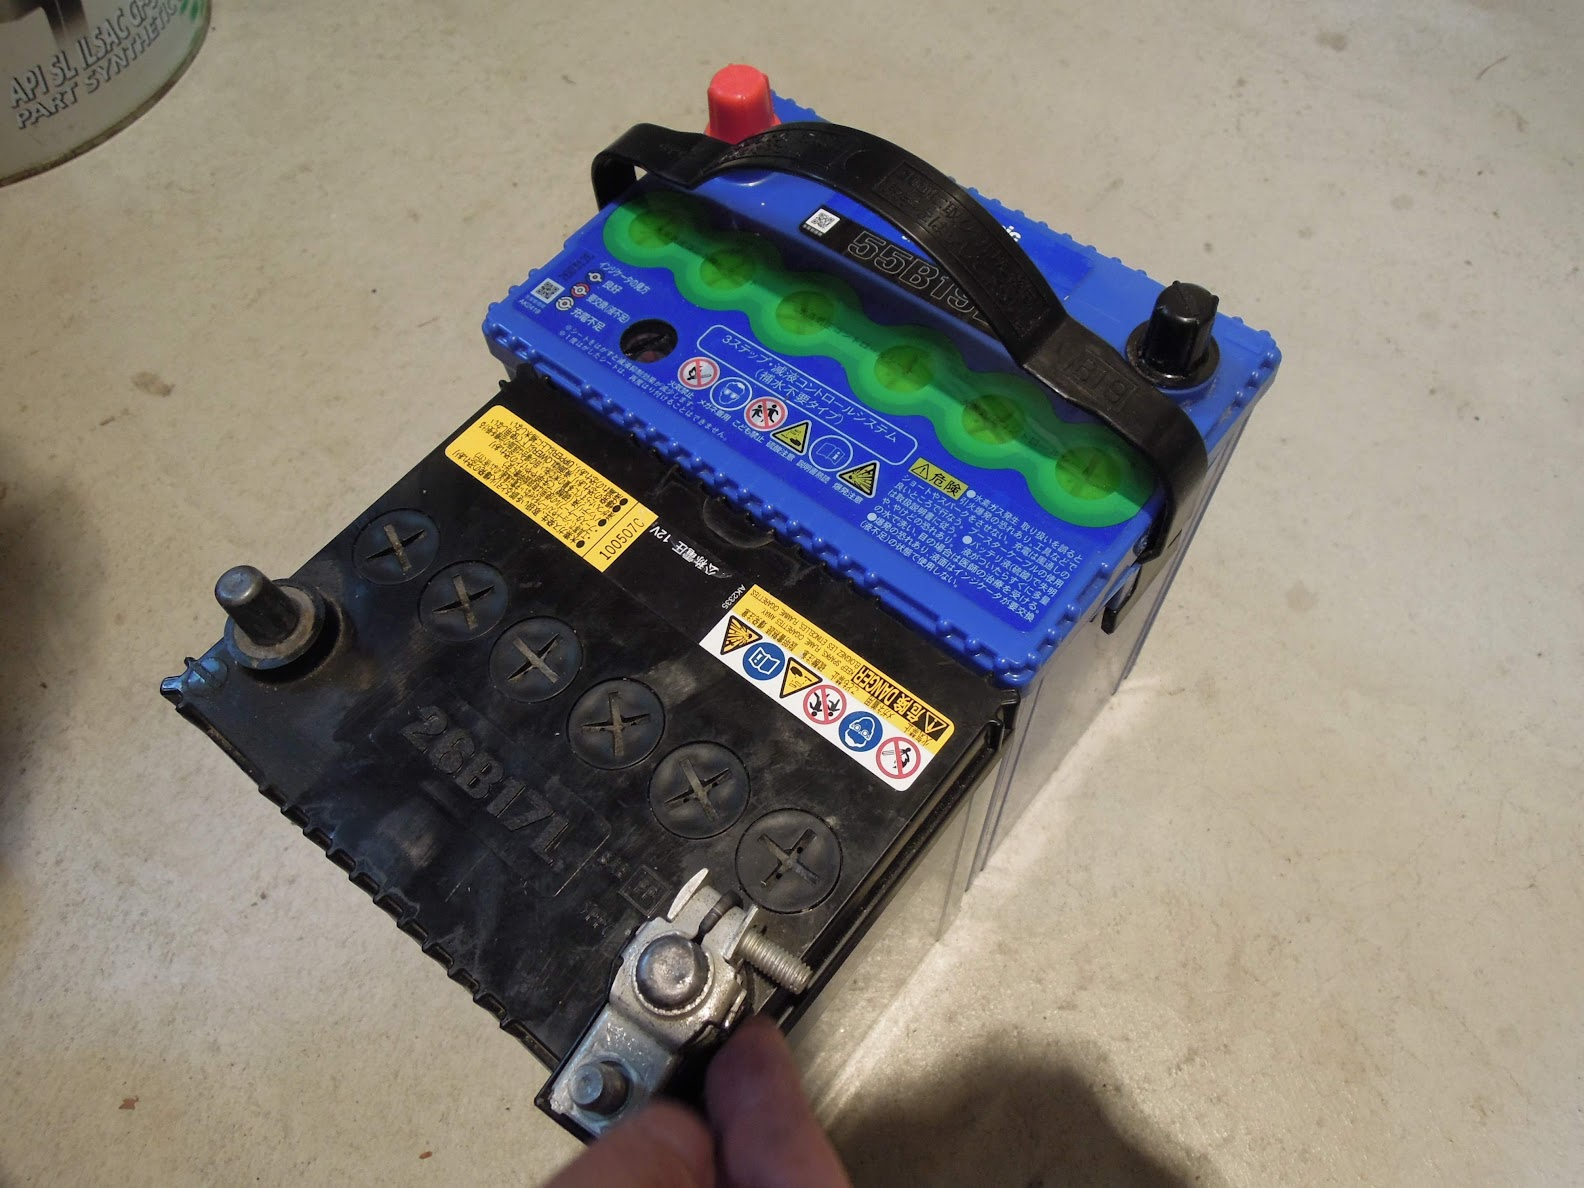 Subaru R1R Batteries